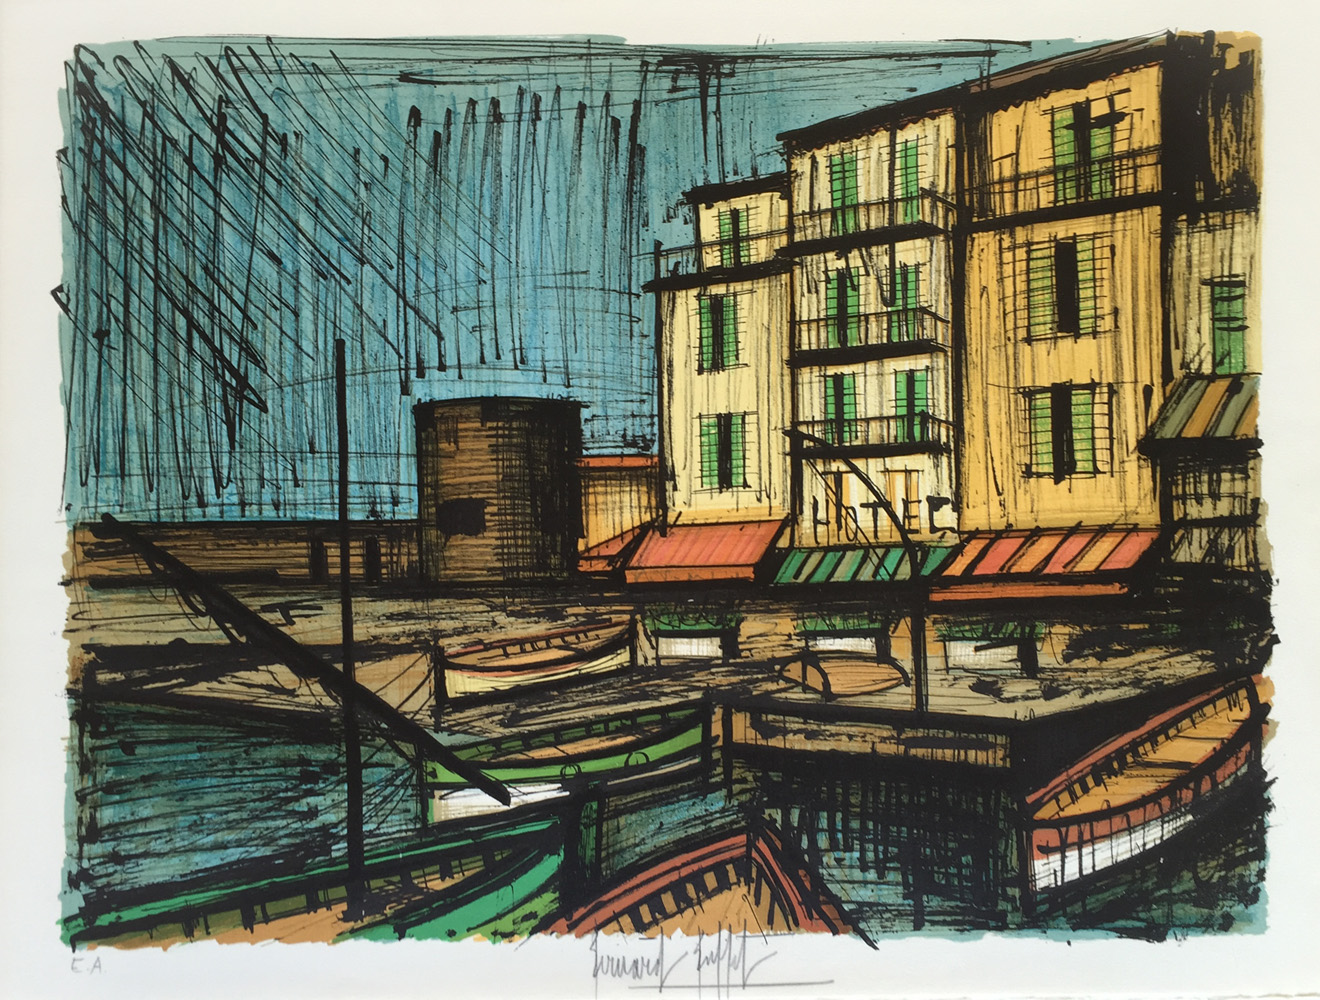 Tremendous Bernard Buffet St Tropez For Sale Denis Bloch Fine Art Download Free Architecture Designs Scobabritishbridgeorg